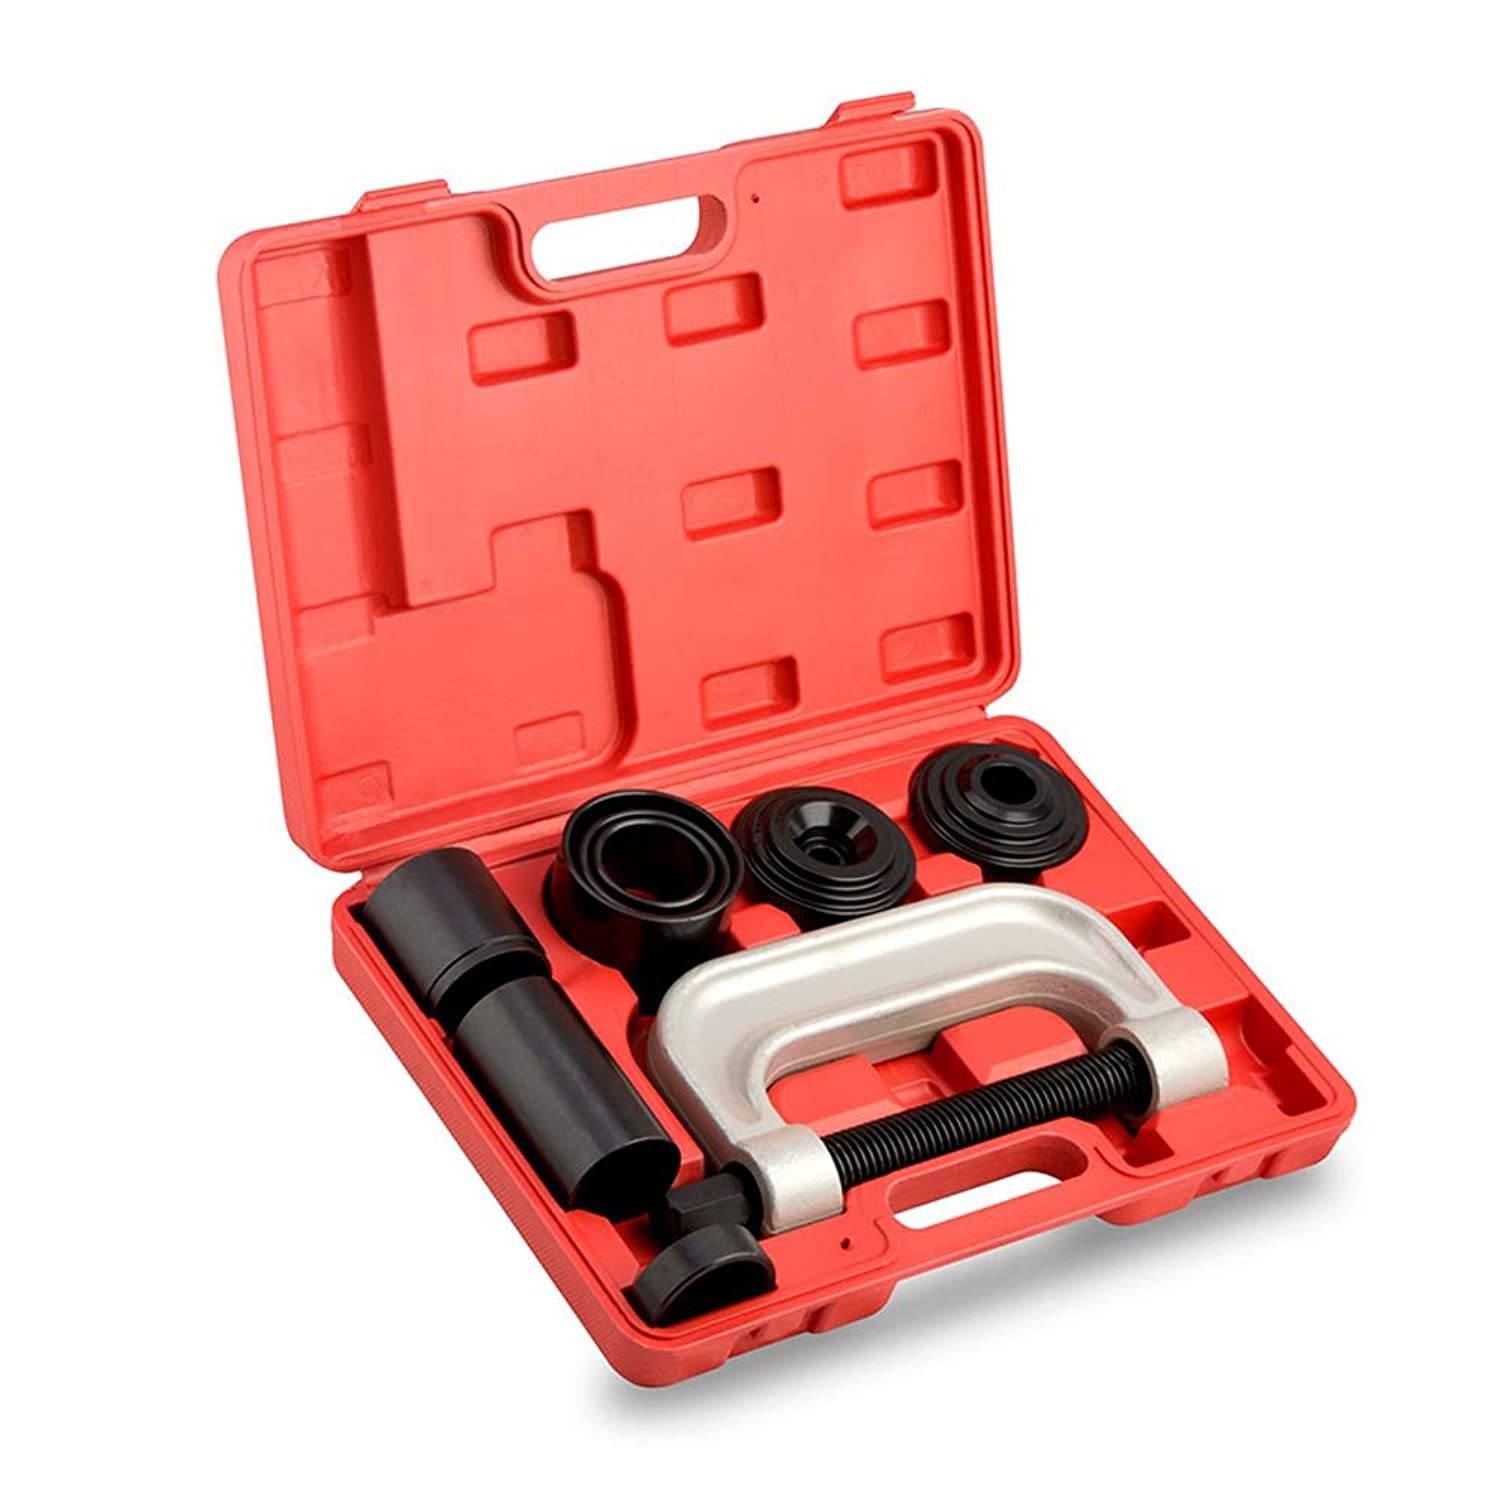 A ABIGAIL Ball Joint Press & U Joint Removal Tool Kit with 4-Wheel Drive Adapters for Most 2WD and 4WD Cars and Light Trucks - Ball Joint Service Tool Kit